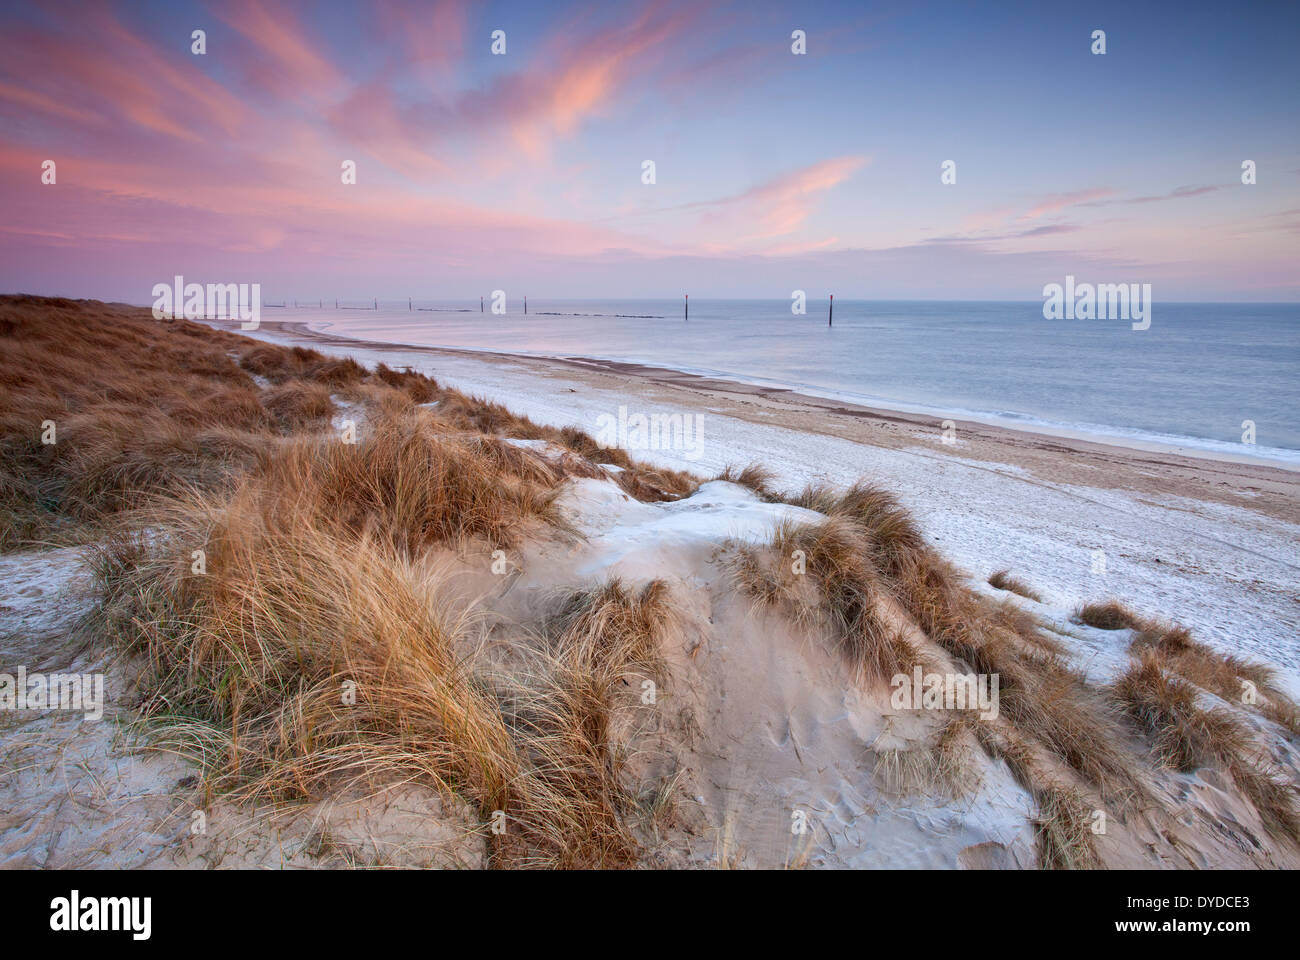 Sea Palling beach on a cold frosty morning on the Norfolk coast. - Stock Image